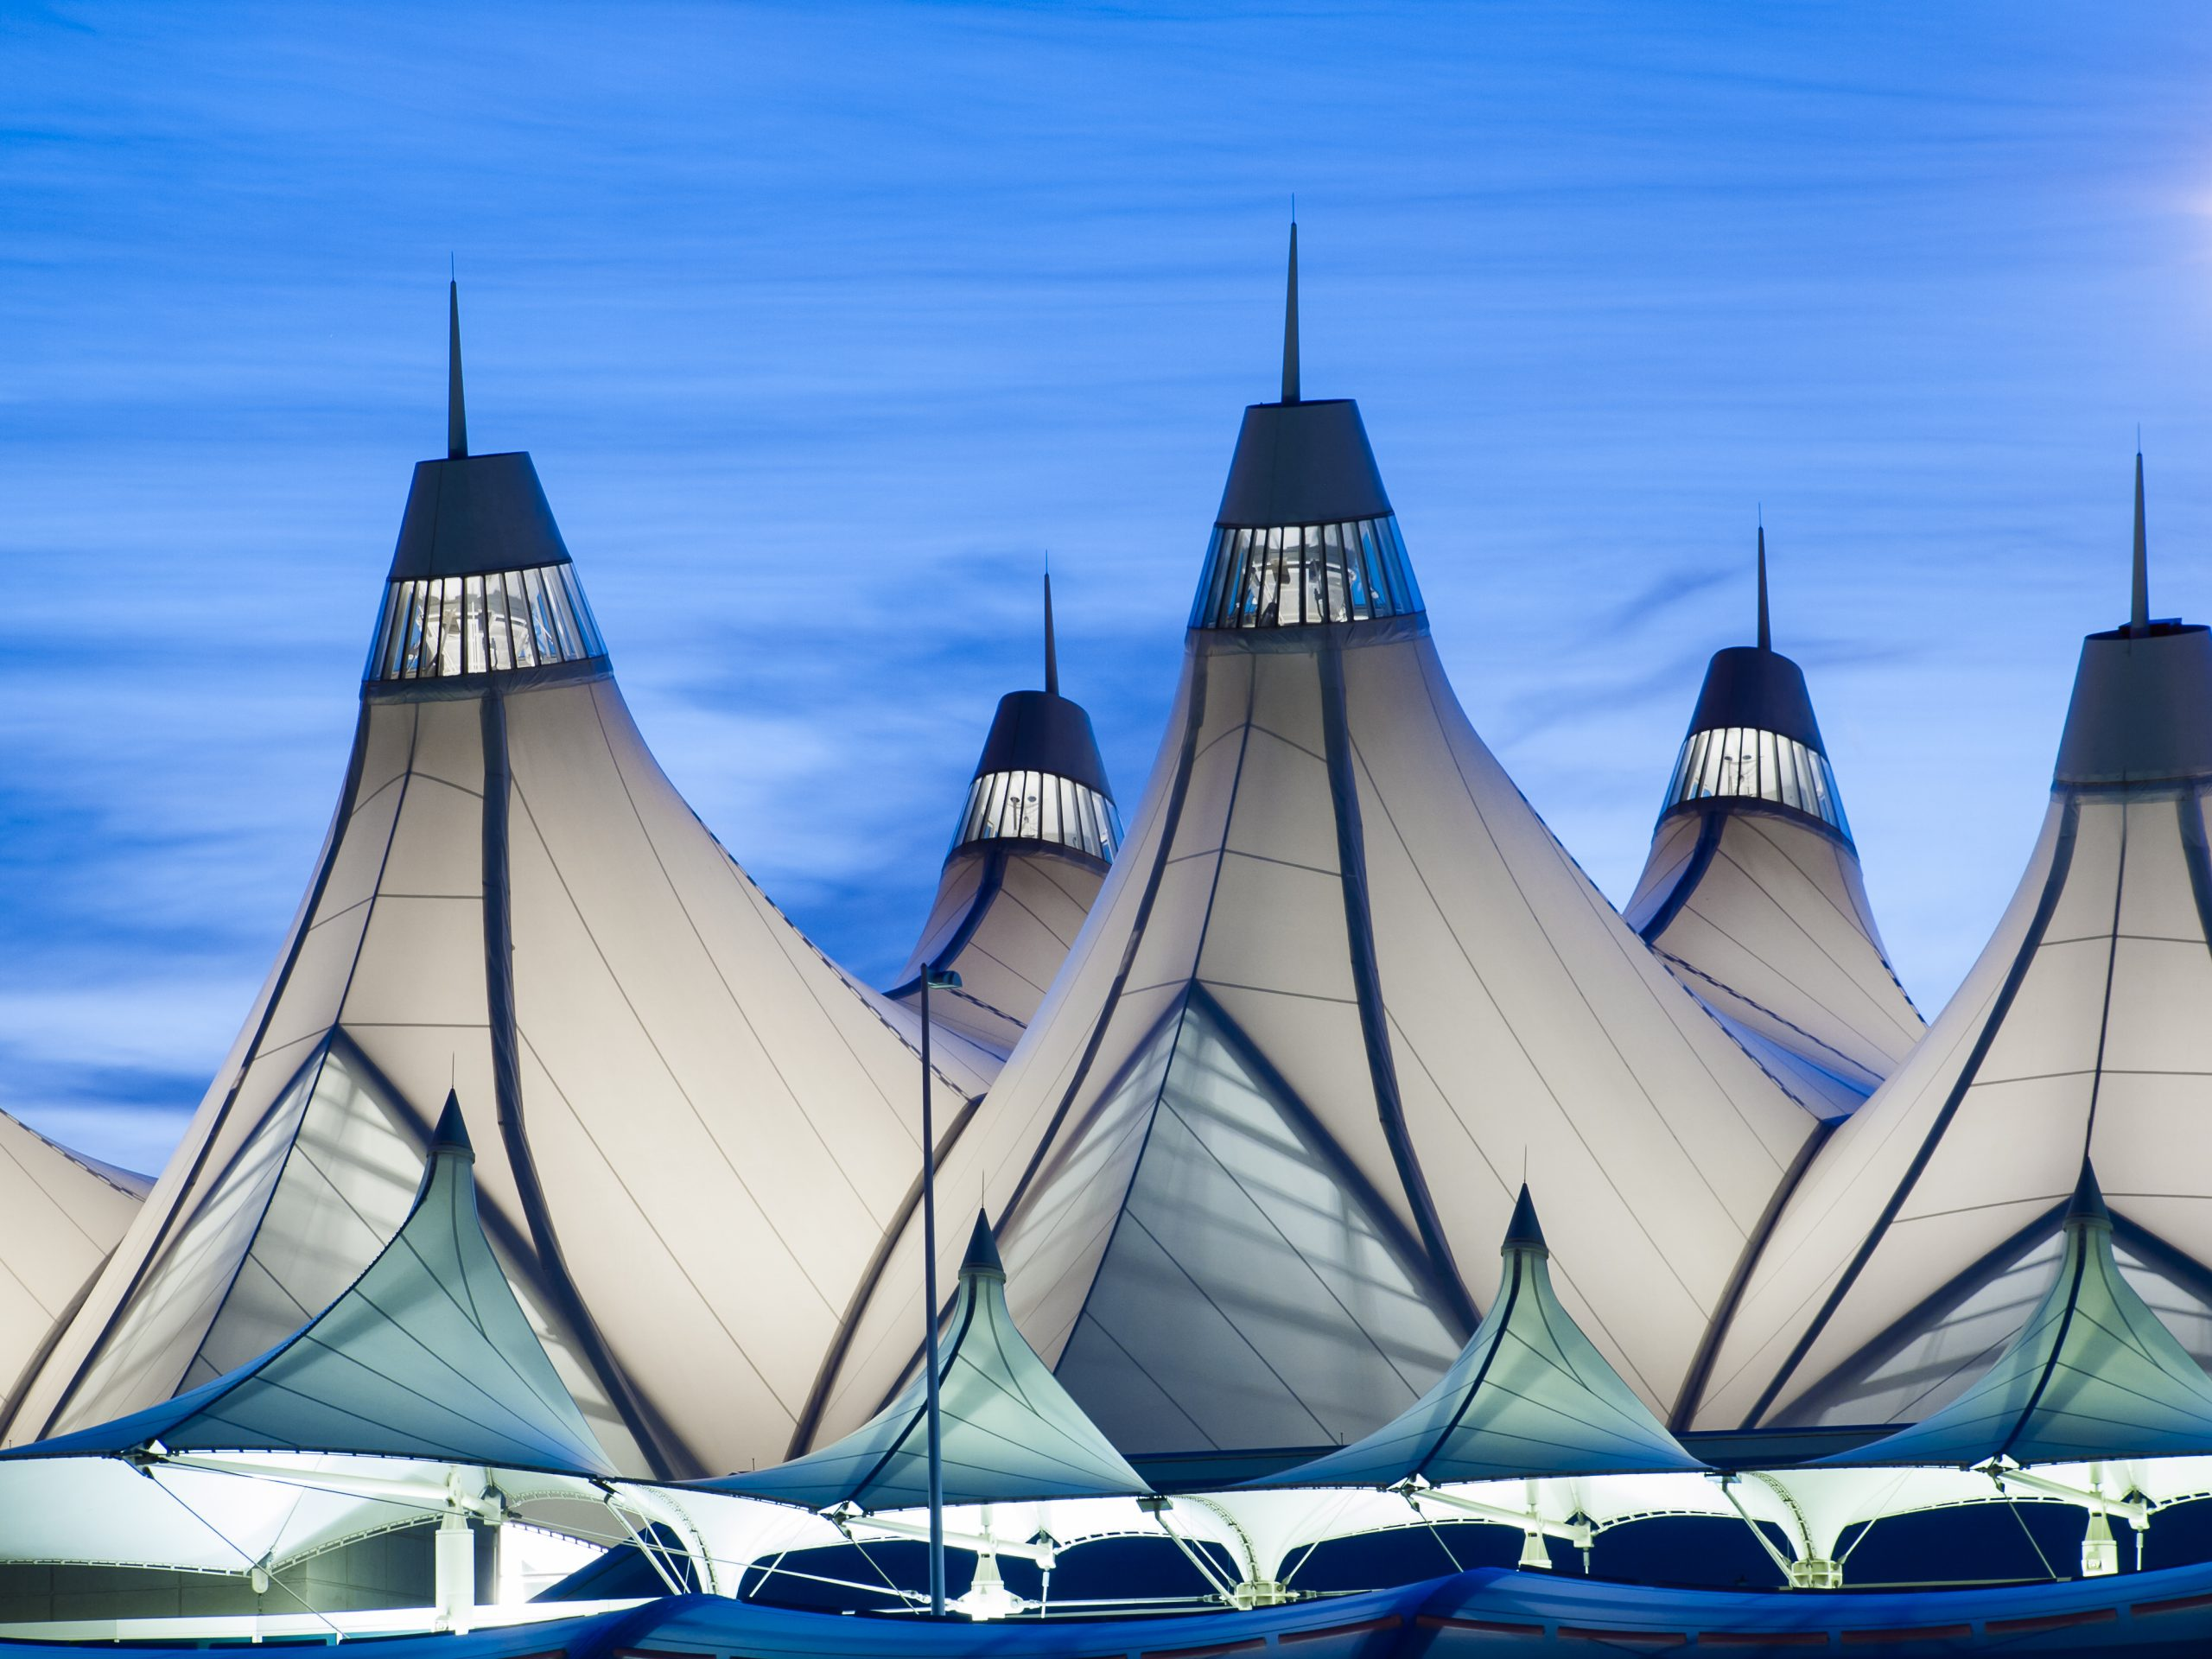 Denver International Airport well known for peaked roof. Design of roof is reflecting snow-capped mountains.